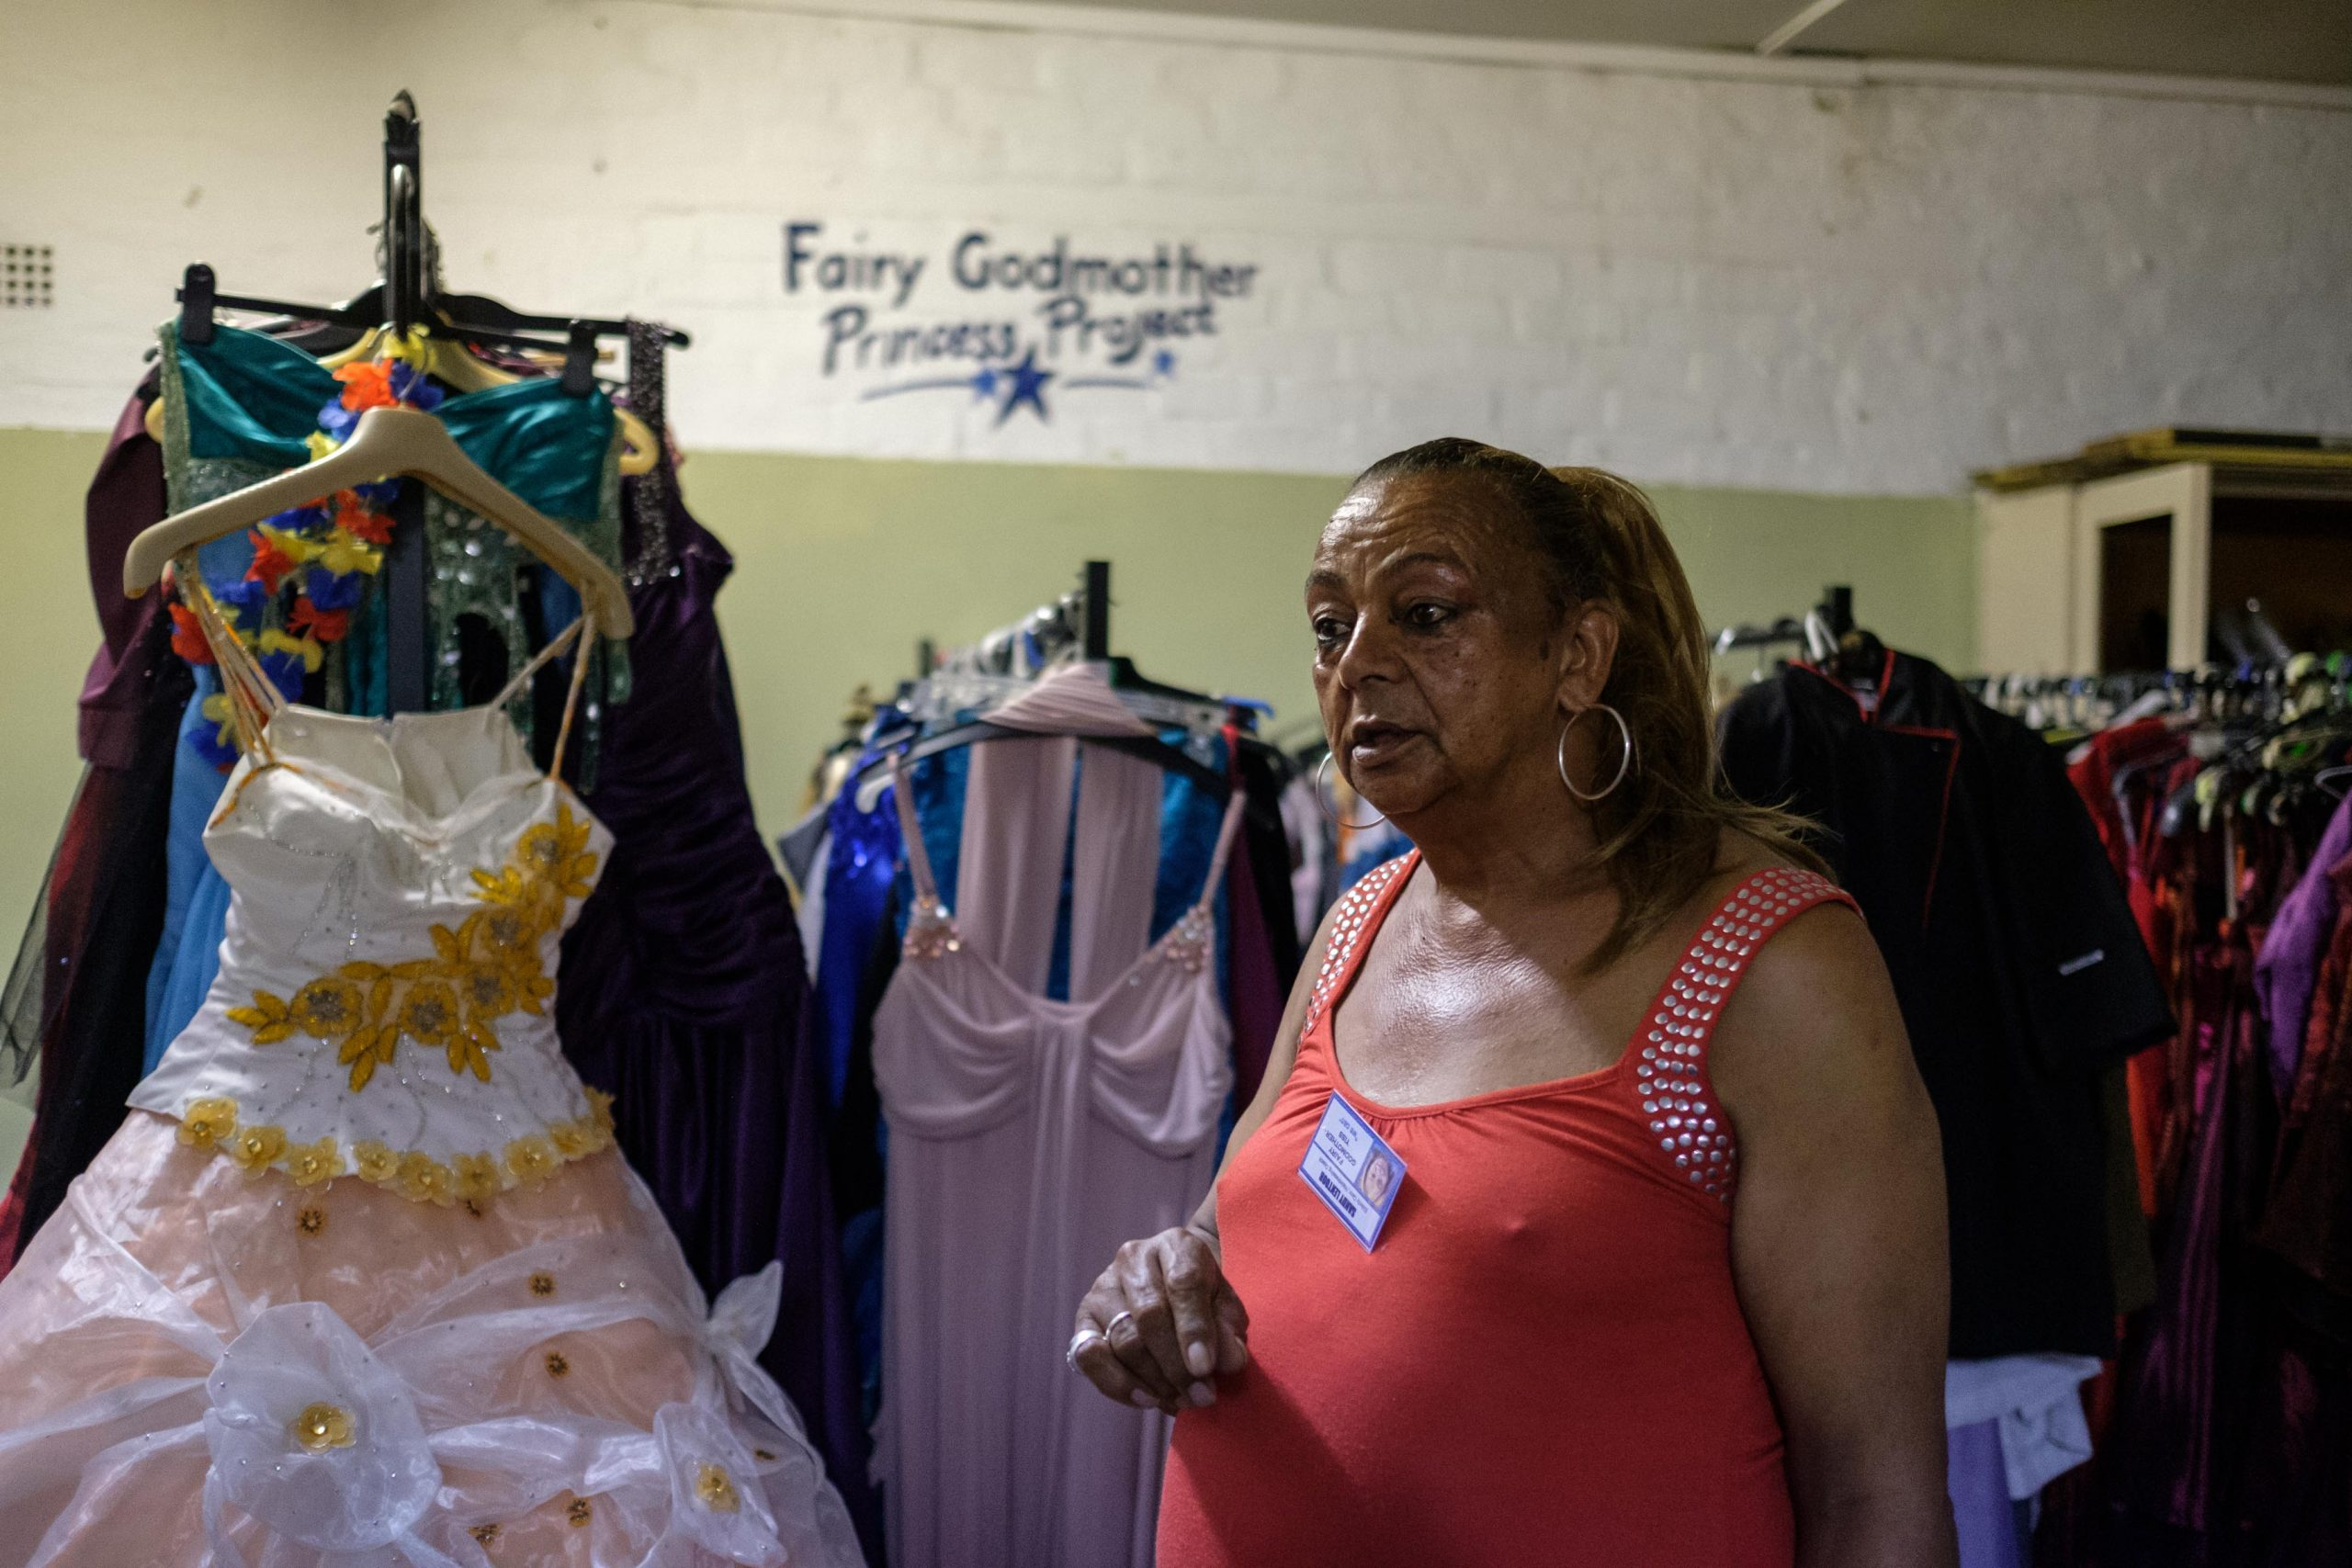 14 February 2020: Sandra Dee runs a project called Fairy Godmother, hosting events for the elderly and hiring out dresses and shoes for matric dances through the Princess Project.